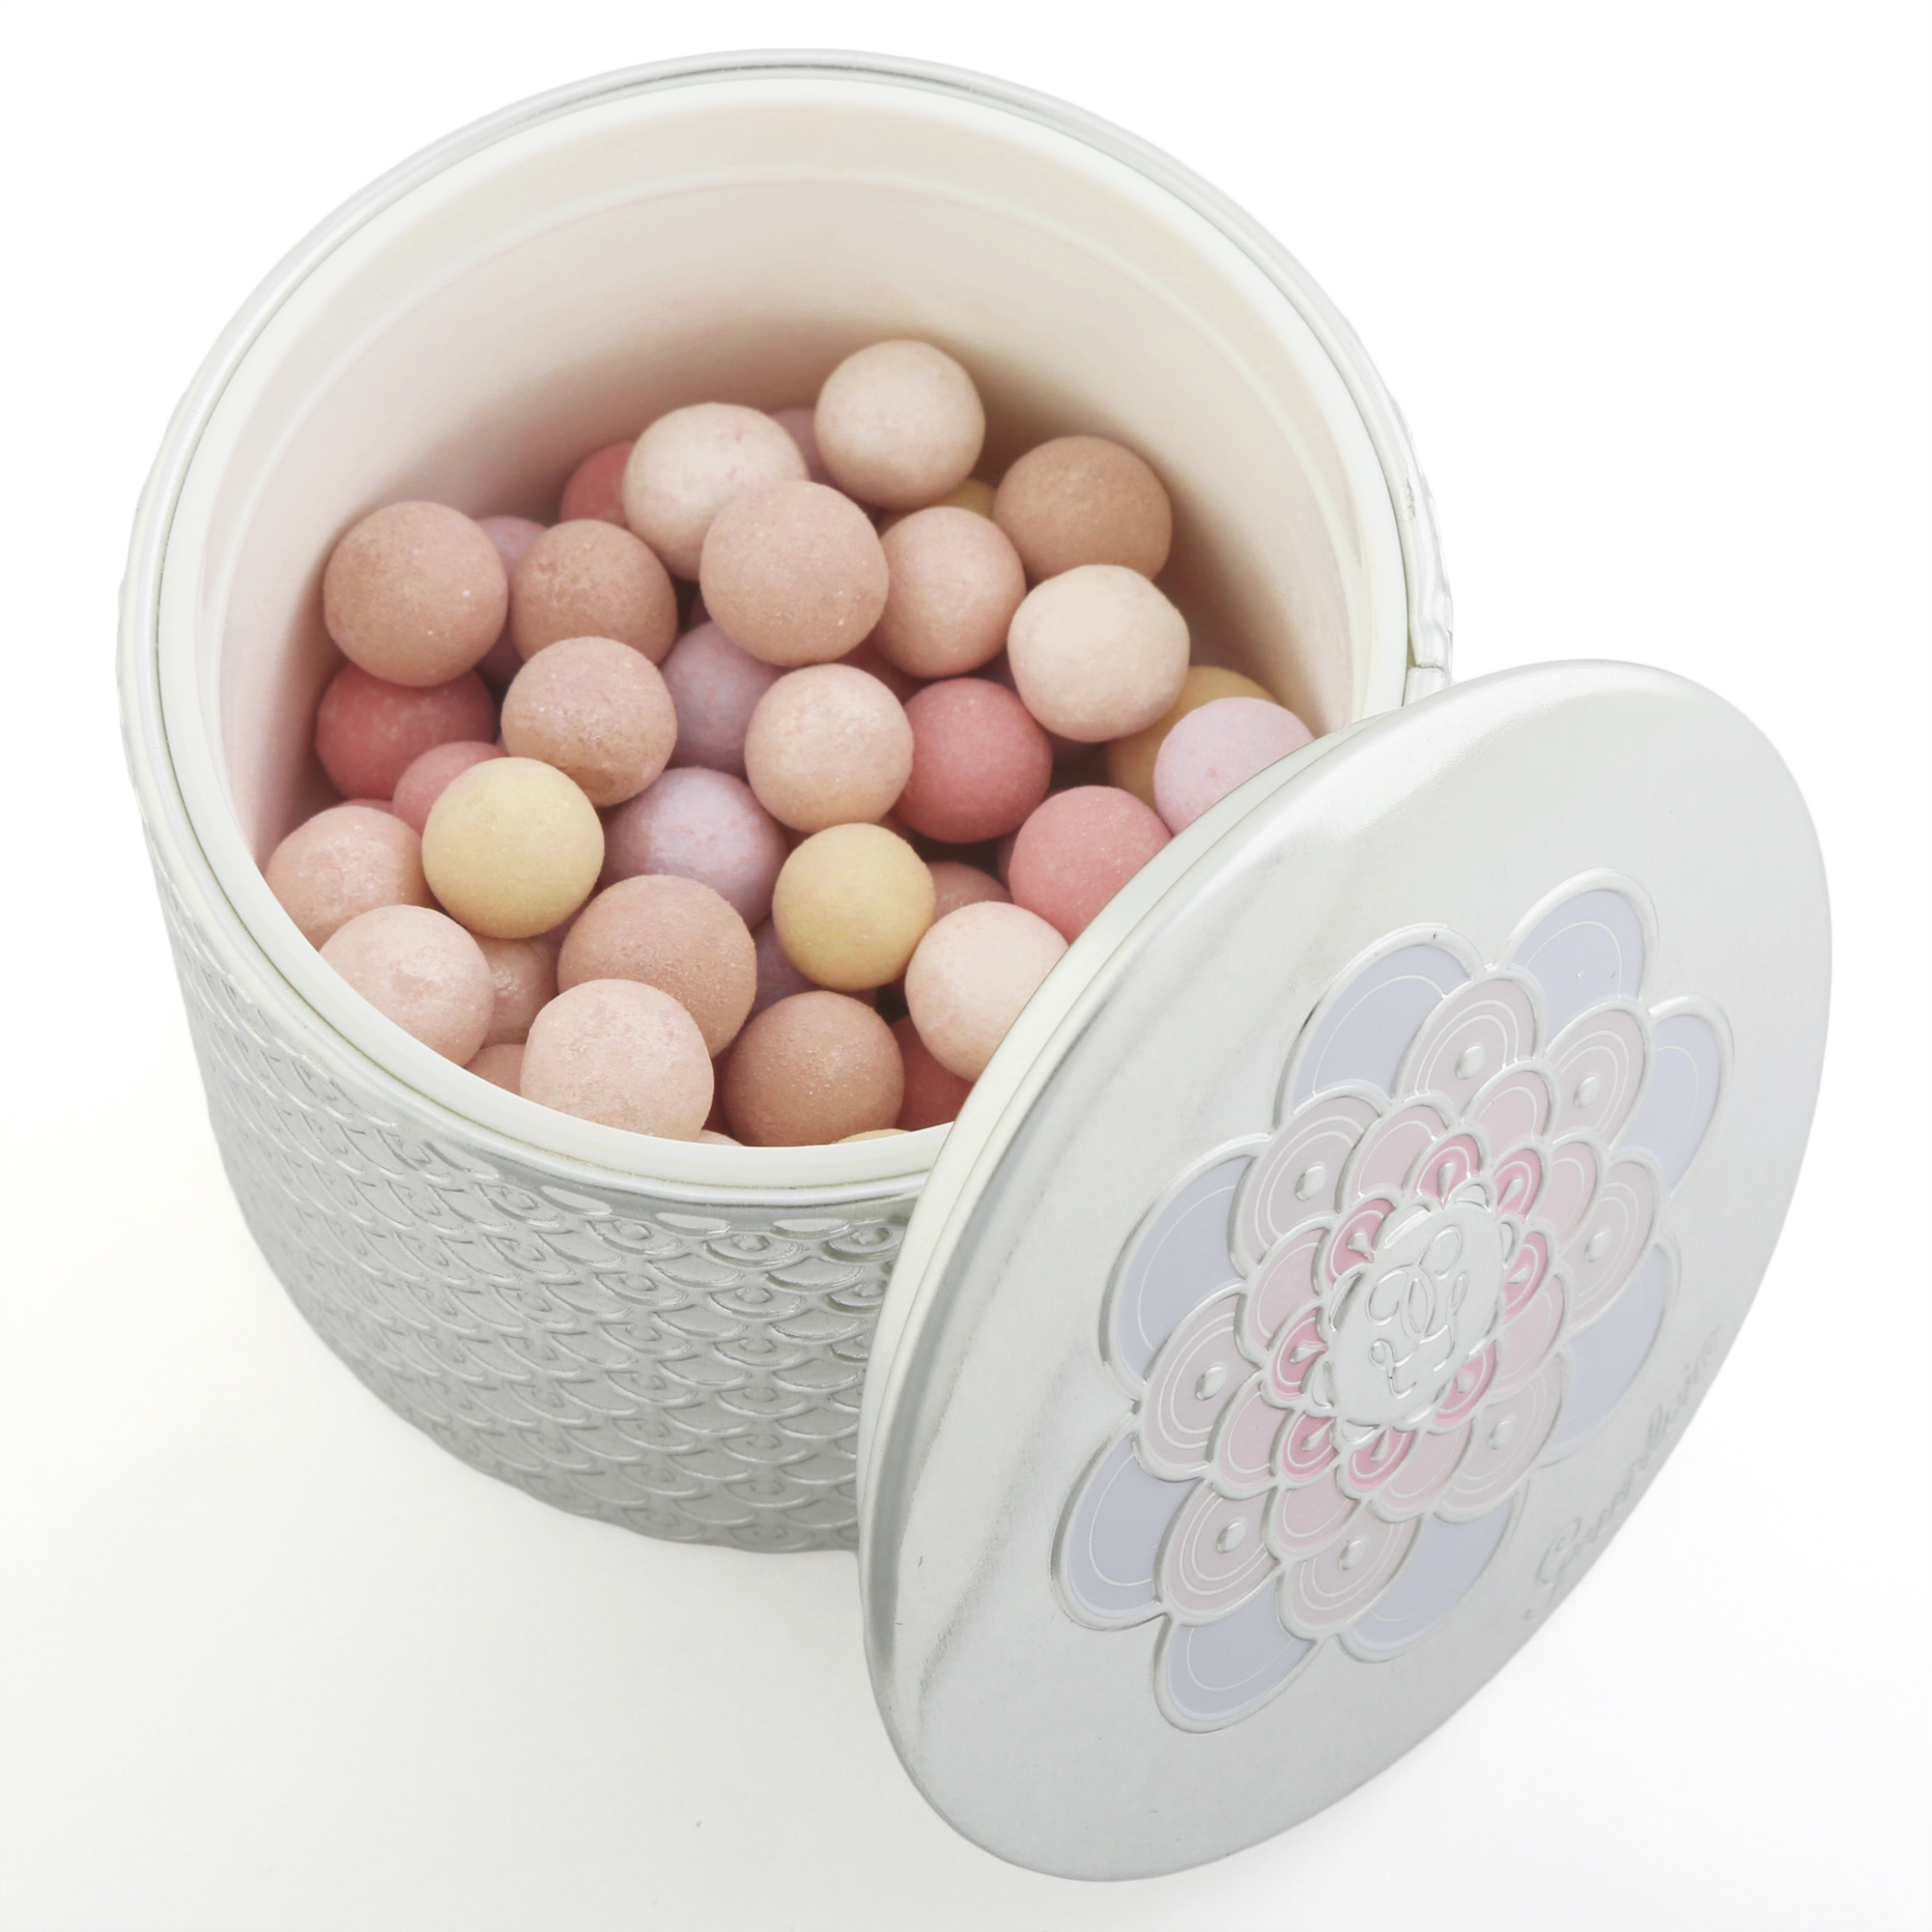 Guerlain Meteorites Light Revealing Pearls of Powder 3 Medium, 0.88oz, 25g from Cosme-De.com